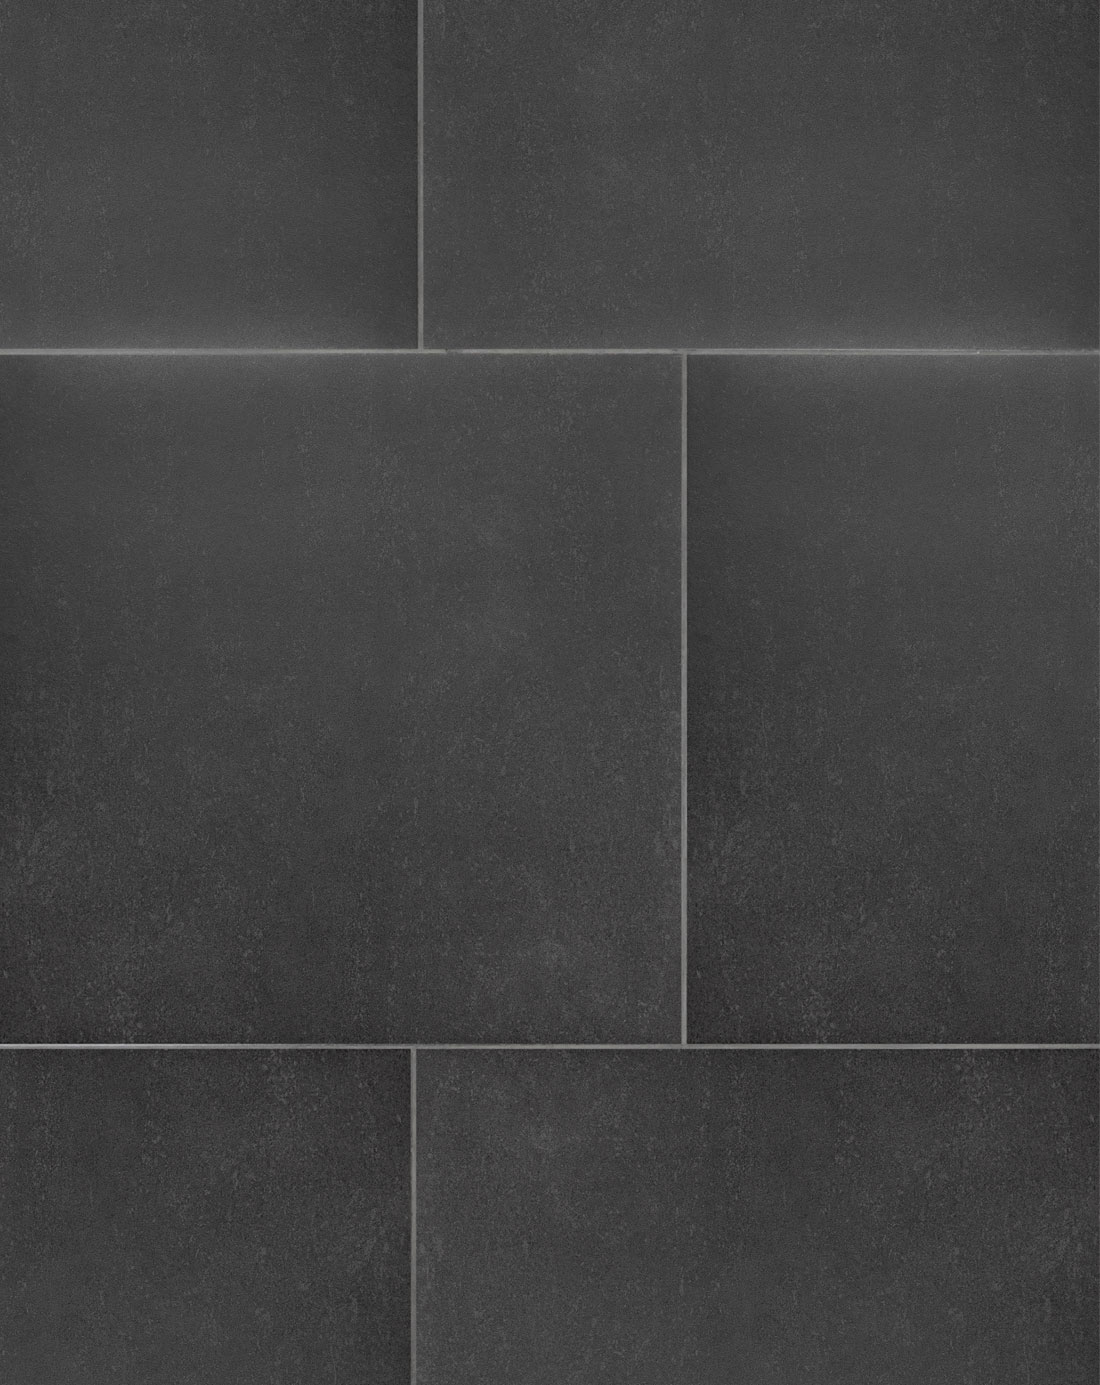 Unistone Black Floor Tile - Bathroom Tiles Direct